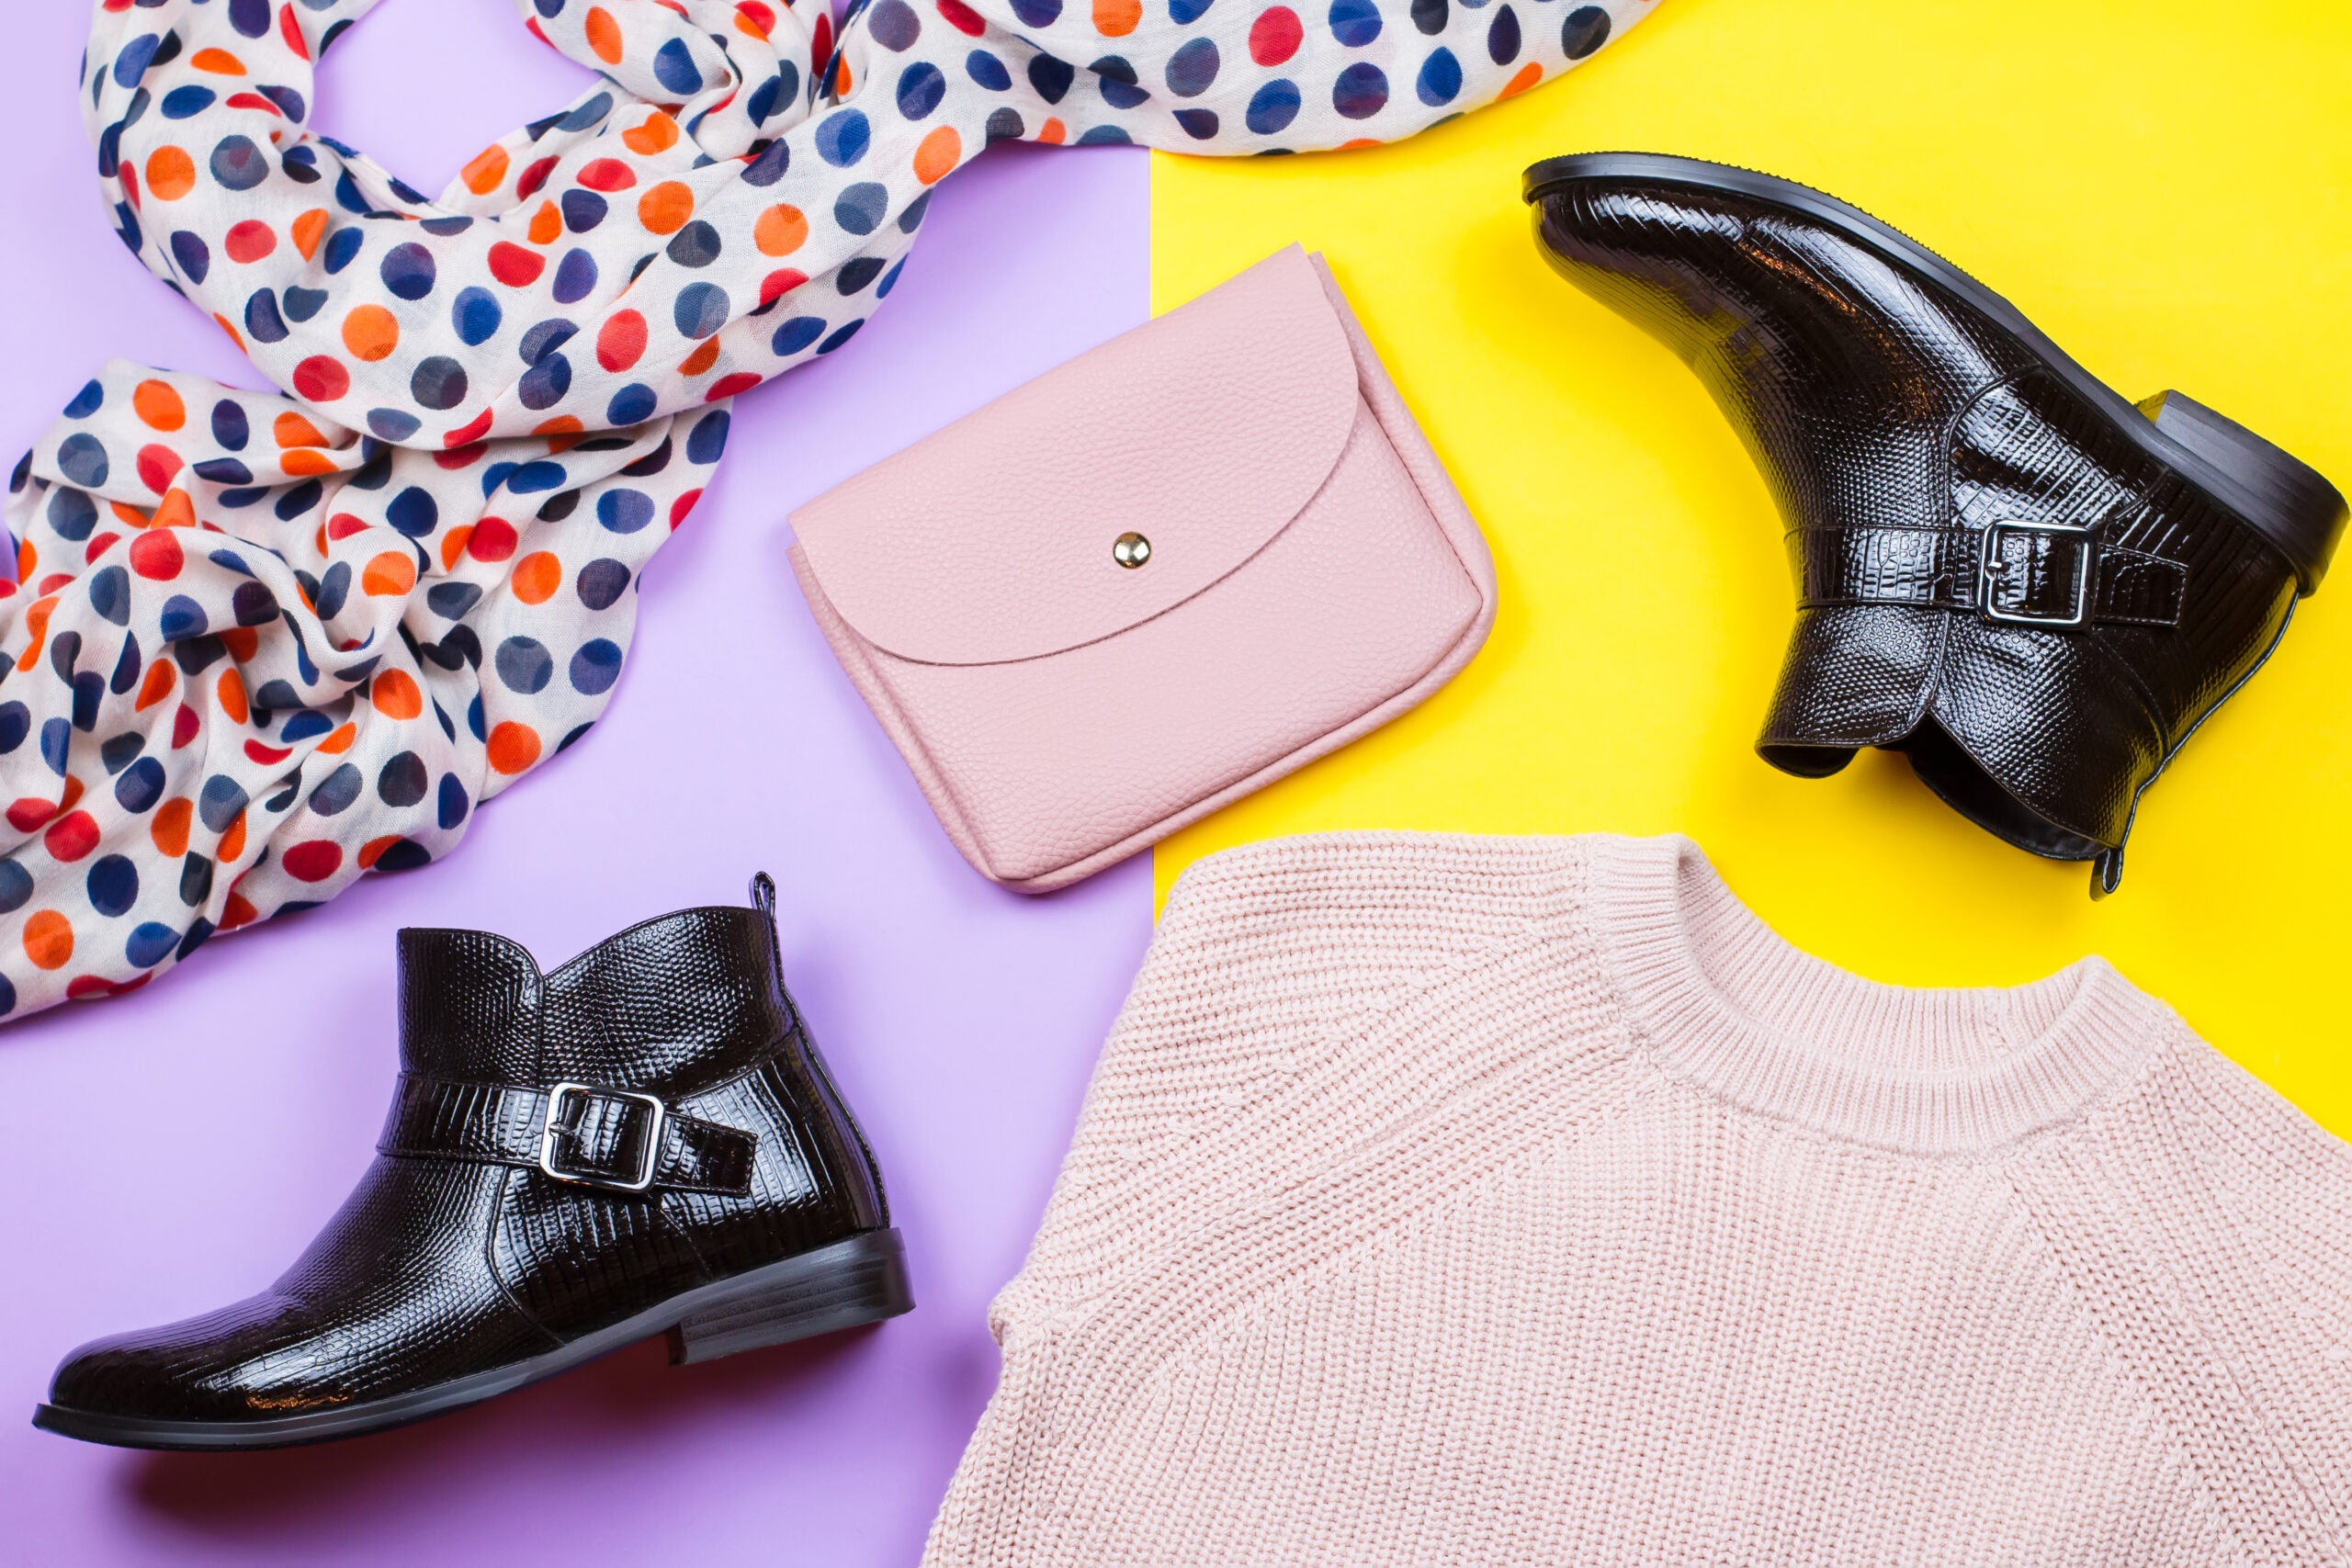 Trendy female autumn clothing. Stylish ankle boots, pink sweater, pink purse and printed scarf on a bright background